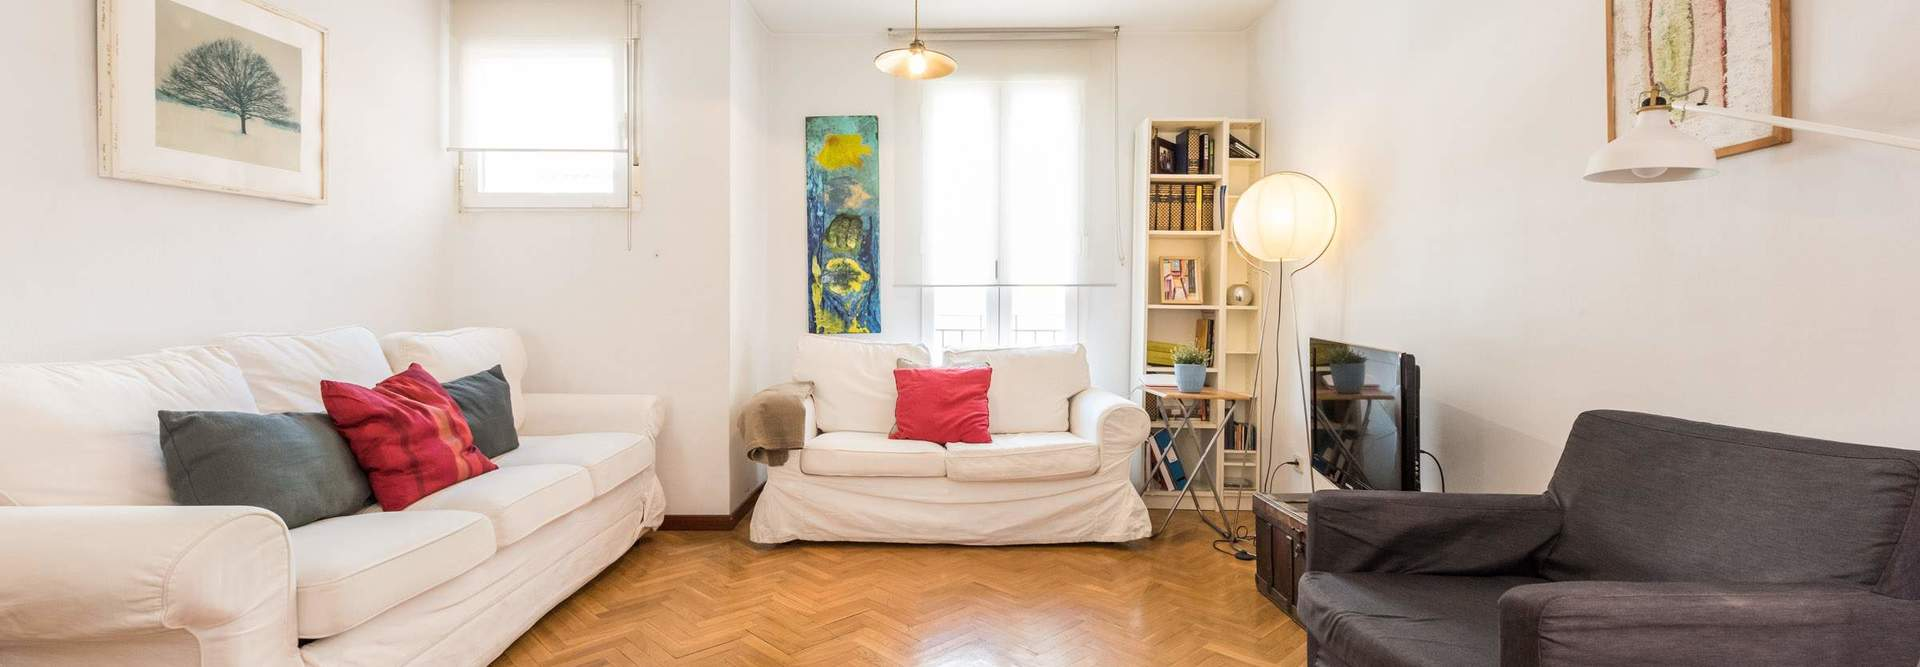 Home alquiler apartamento por d as madrid centro  15